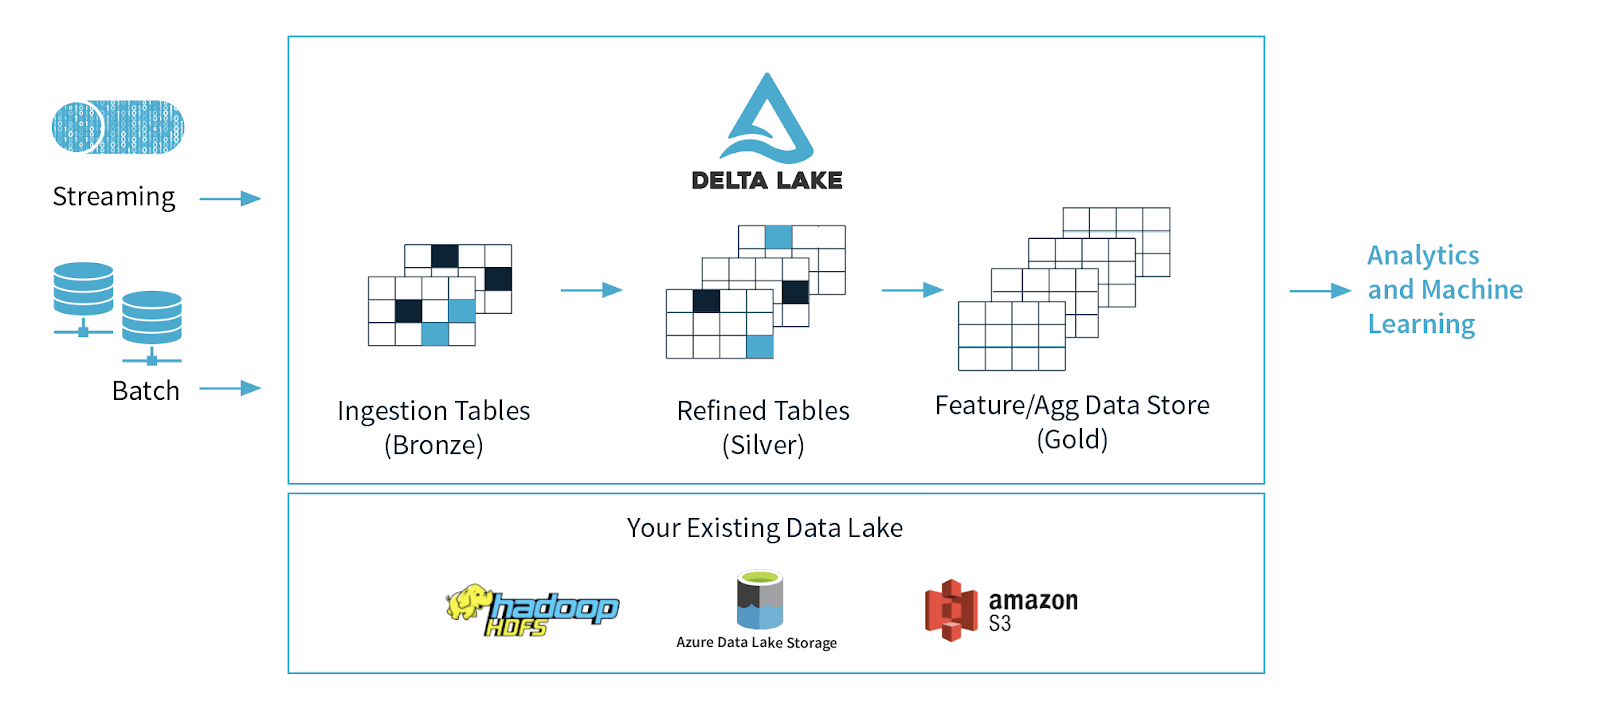 Delta Sharing is part of the widely adopted open source project Delta Lake.